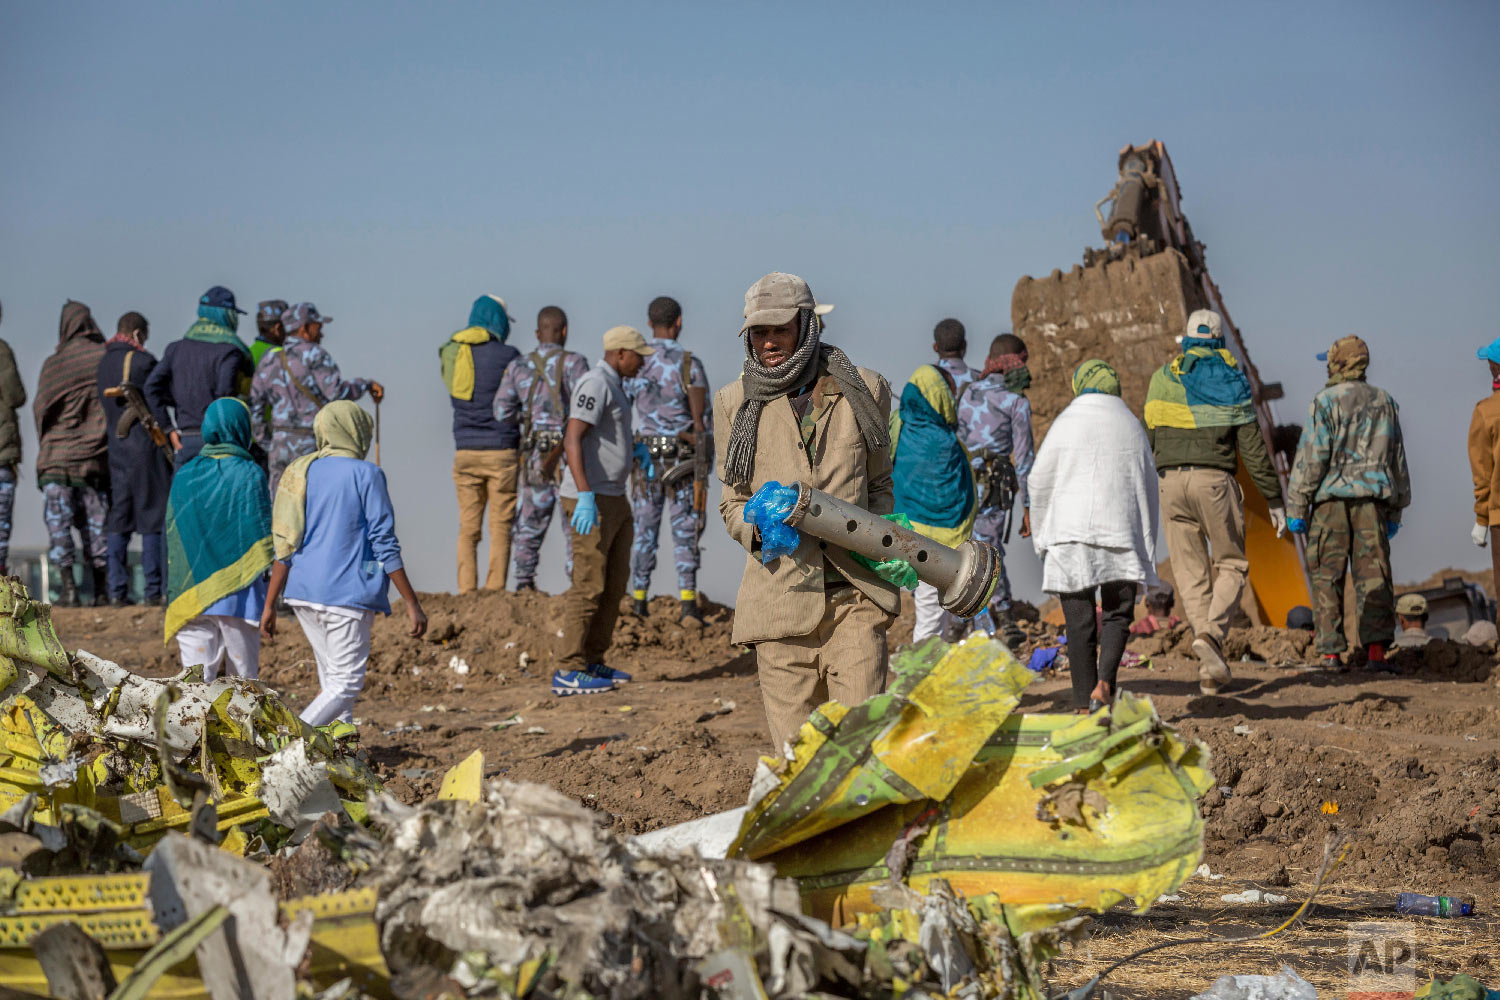 Workers gather at the scene of an Ethiopian Airlines flight crash near Bishoftu, Ethiopia, March 11, 2019. (AP Photo/Mulugeta Ayene)